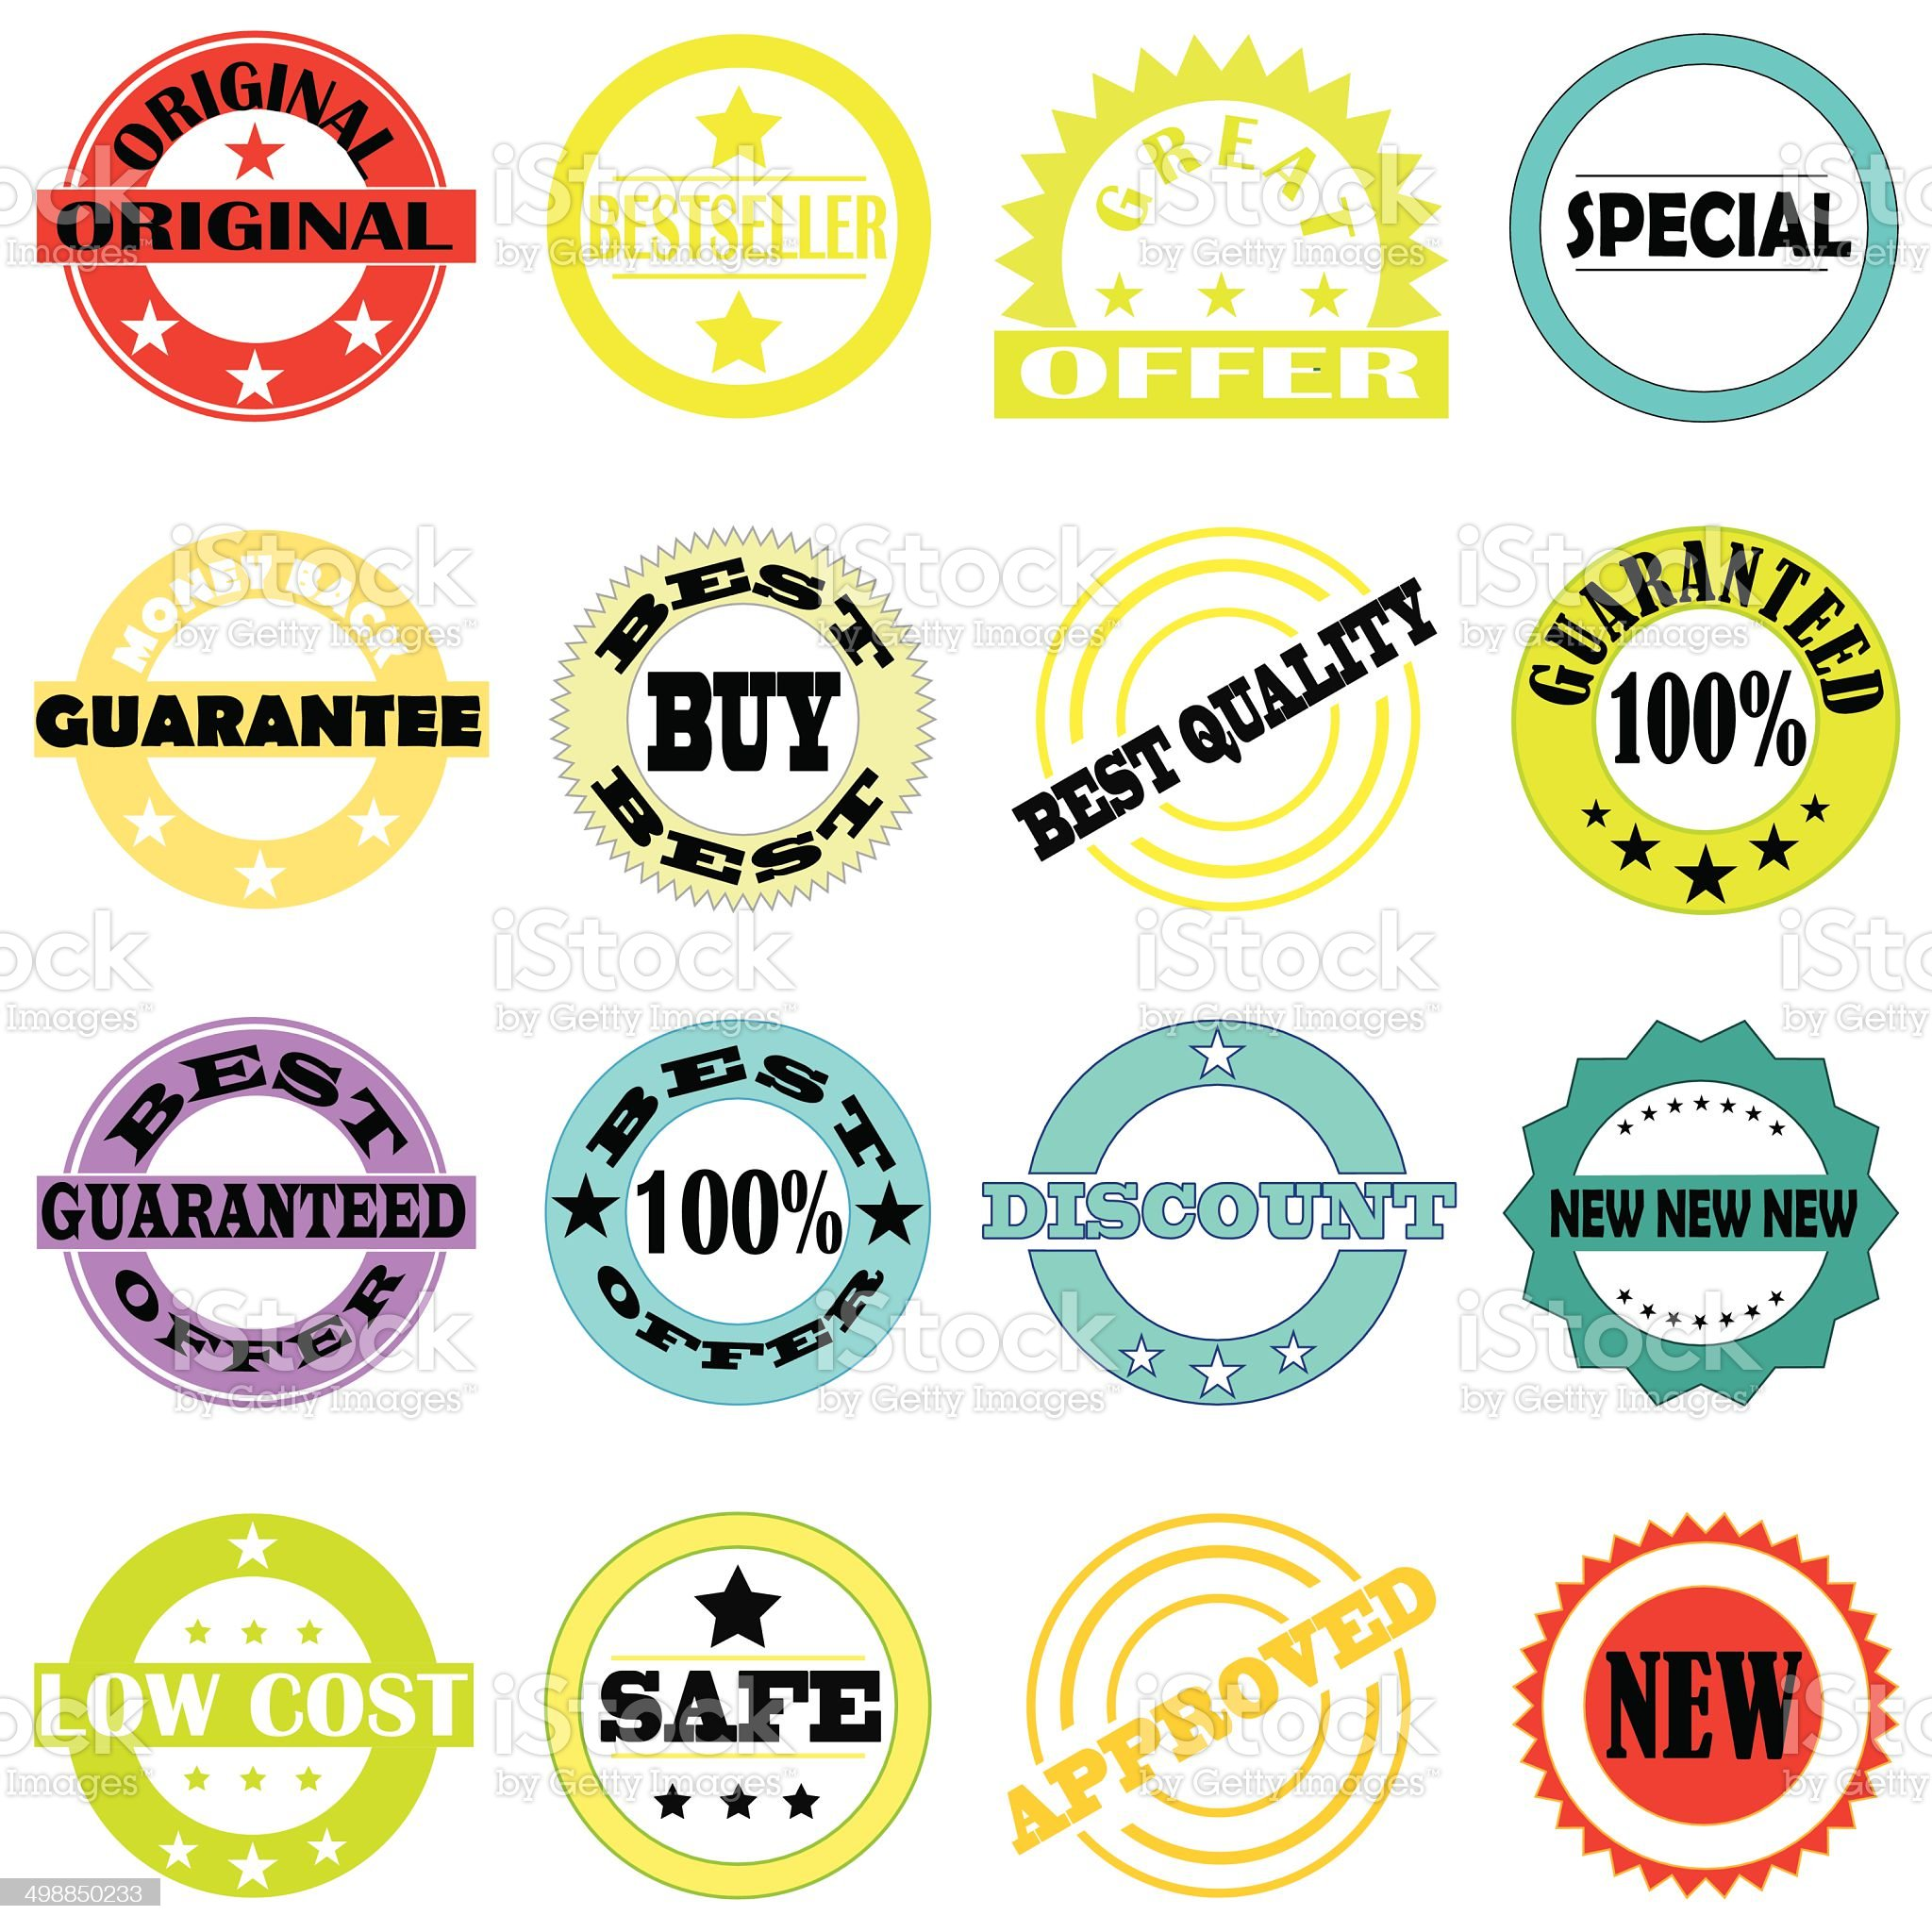 Stamps and stickers royalty-free stock vector art